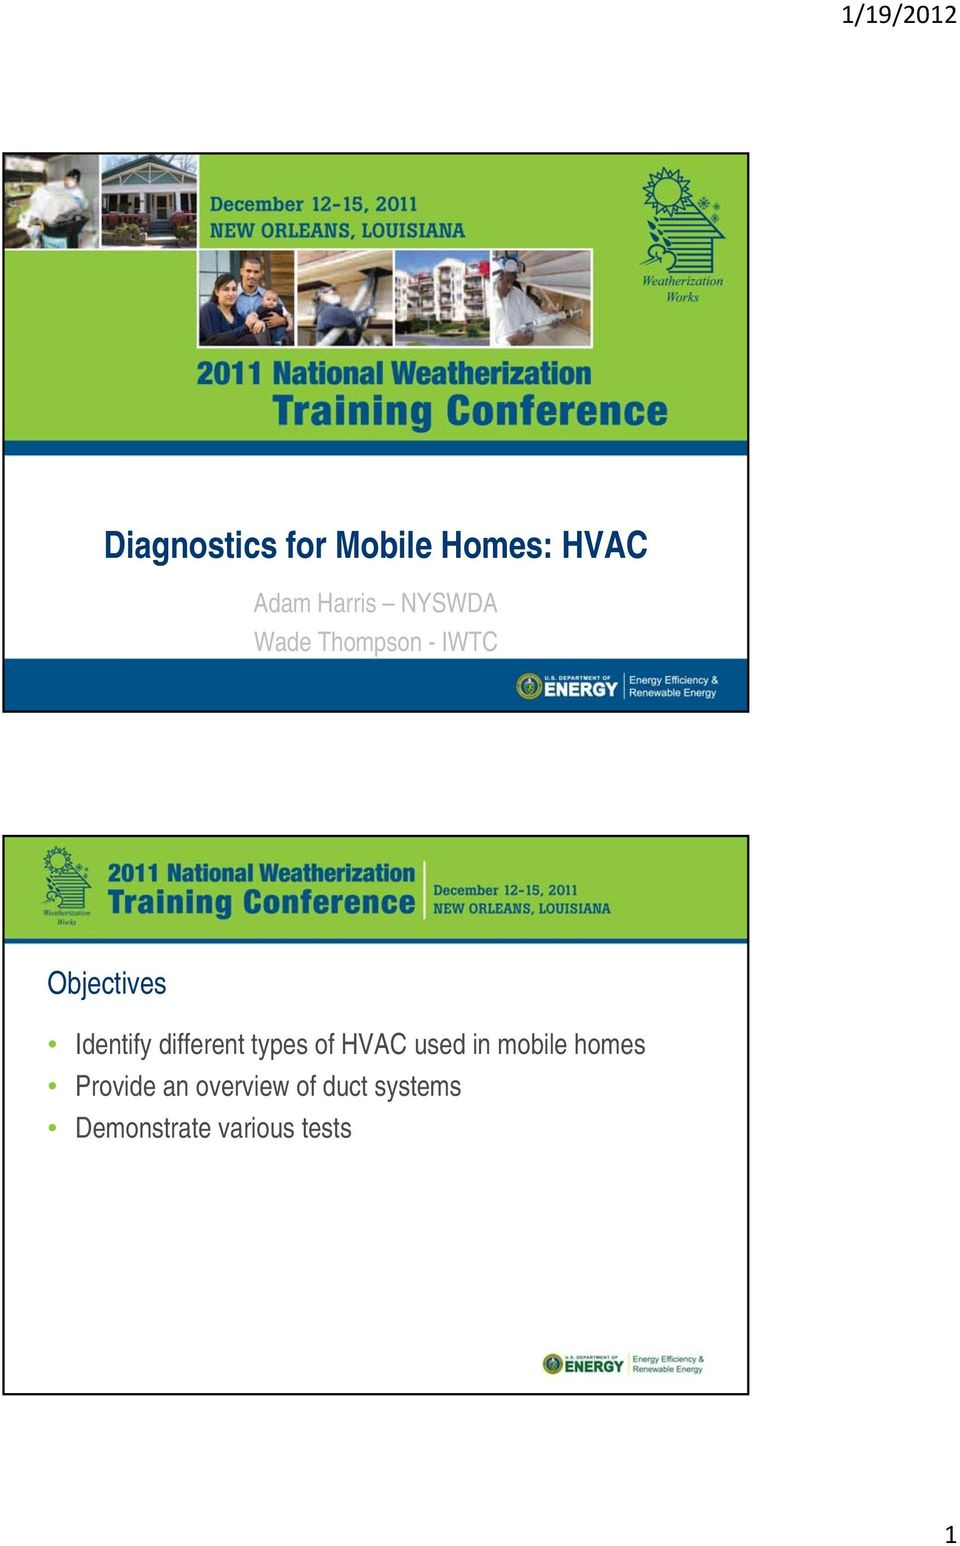 different types of HVAC used in mobile homes